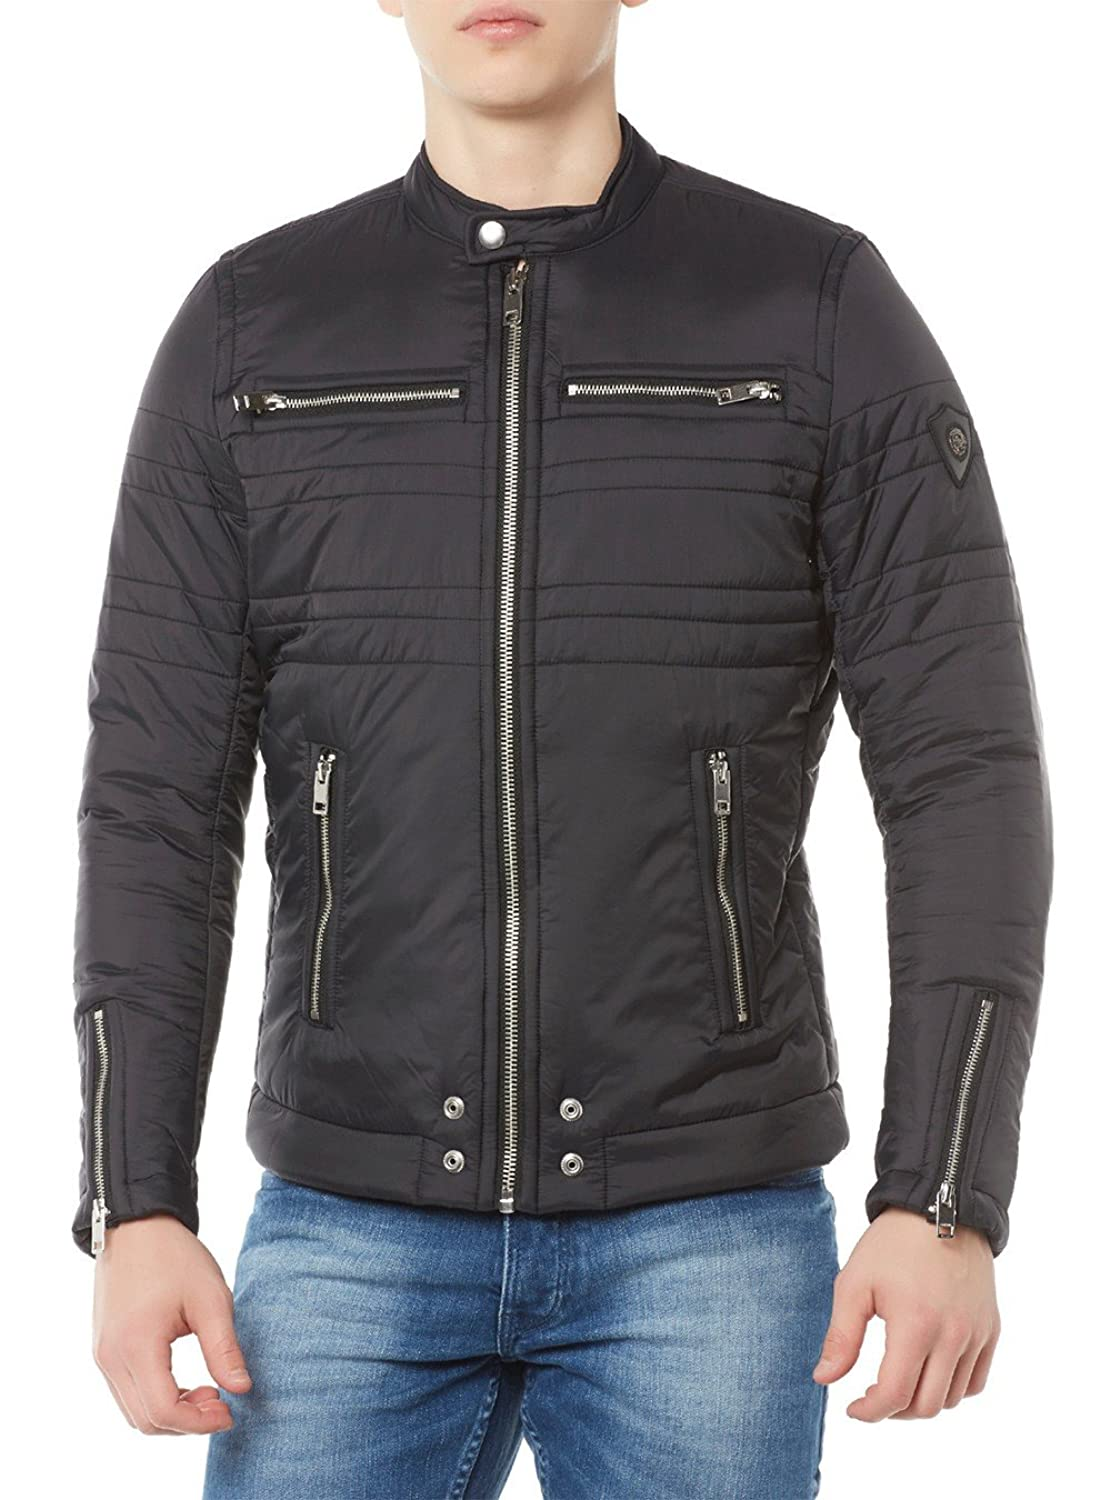 DIESEL - Jackets - Men - Black Biker Never Zipped Padded Jacket for men